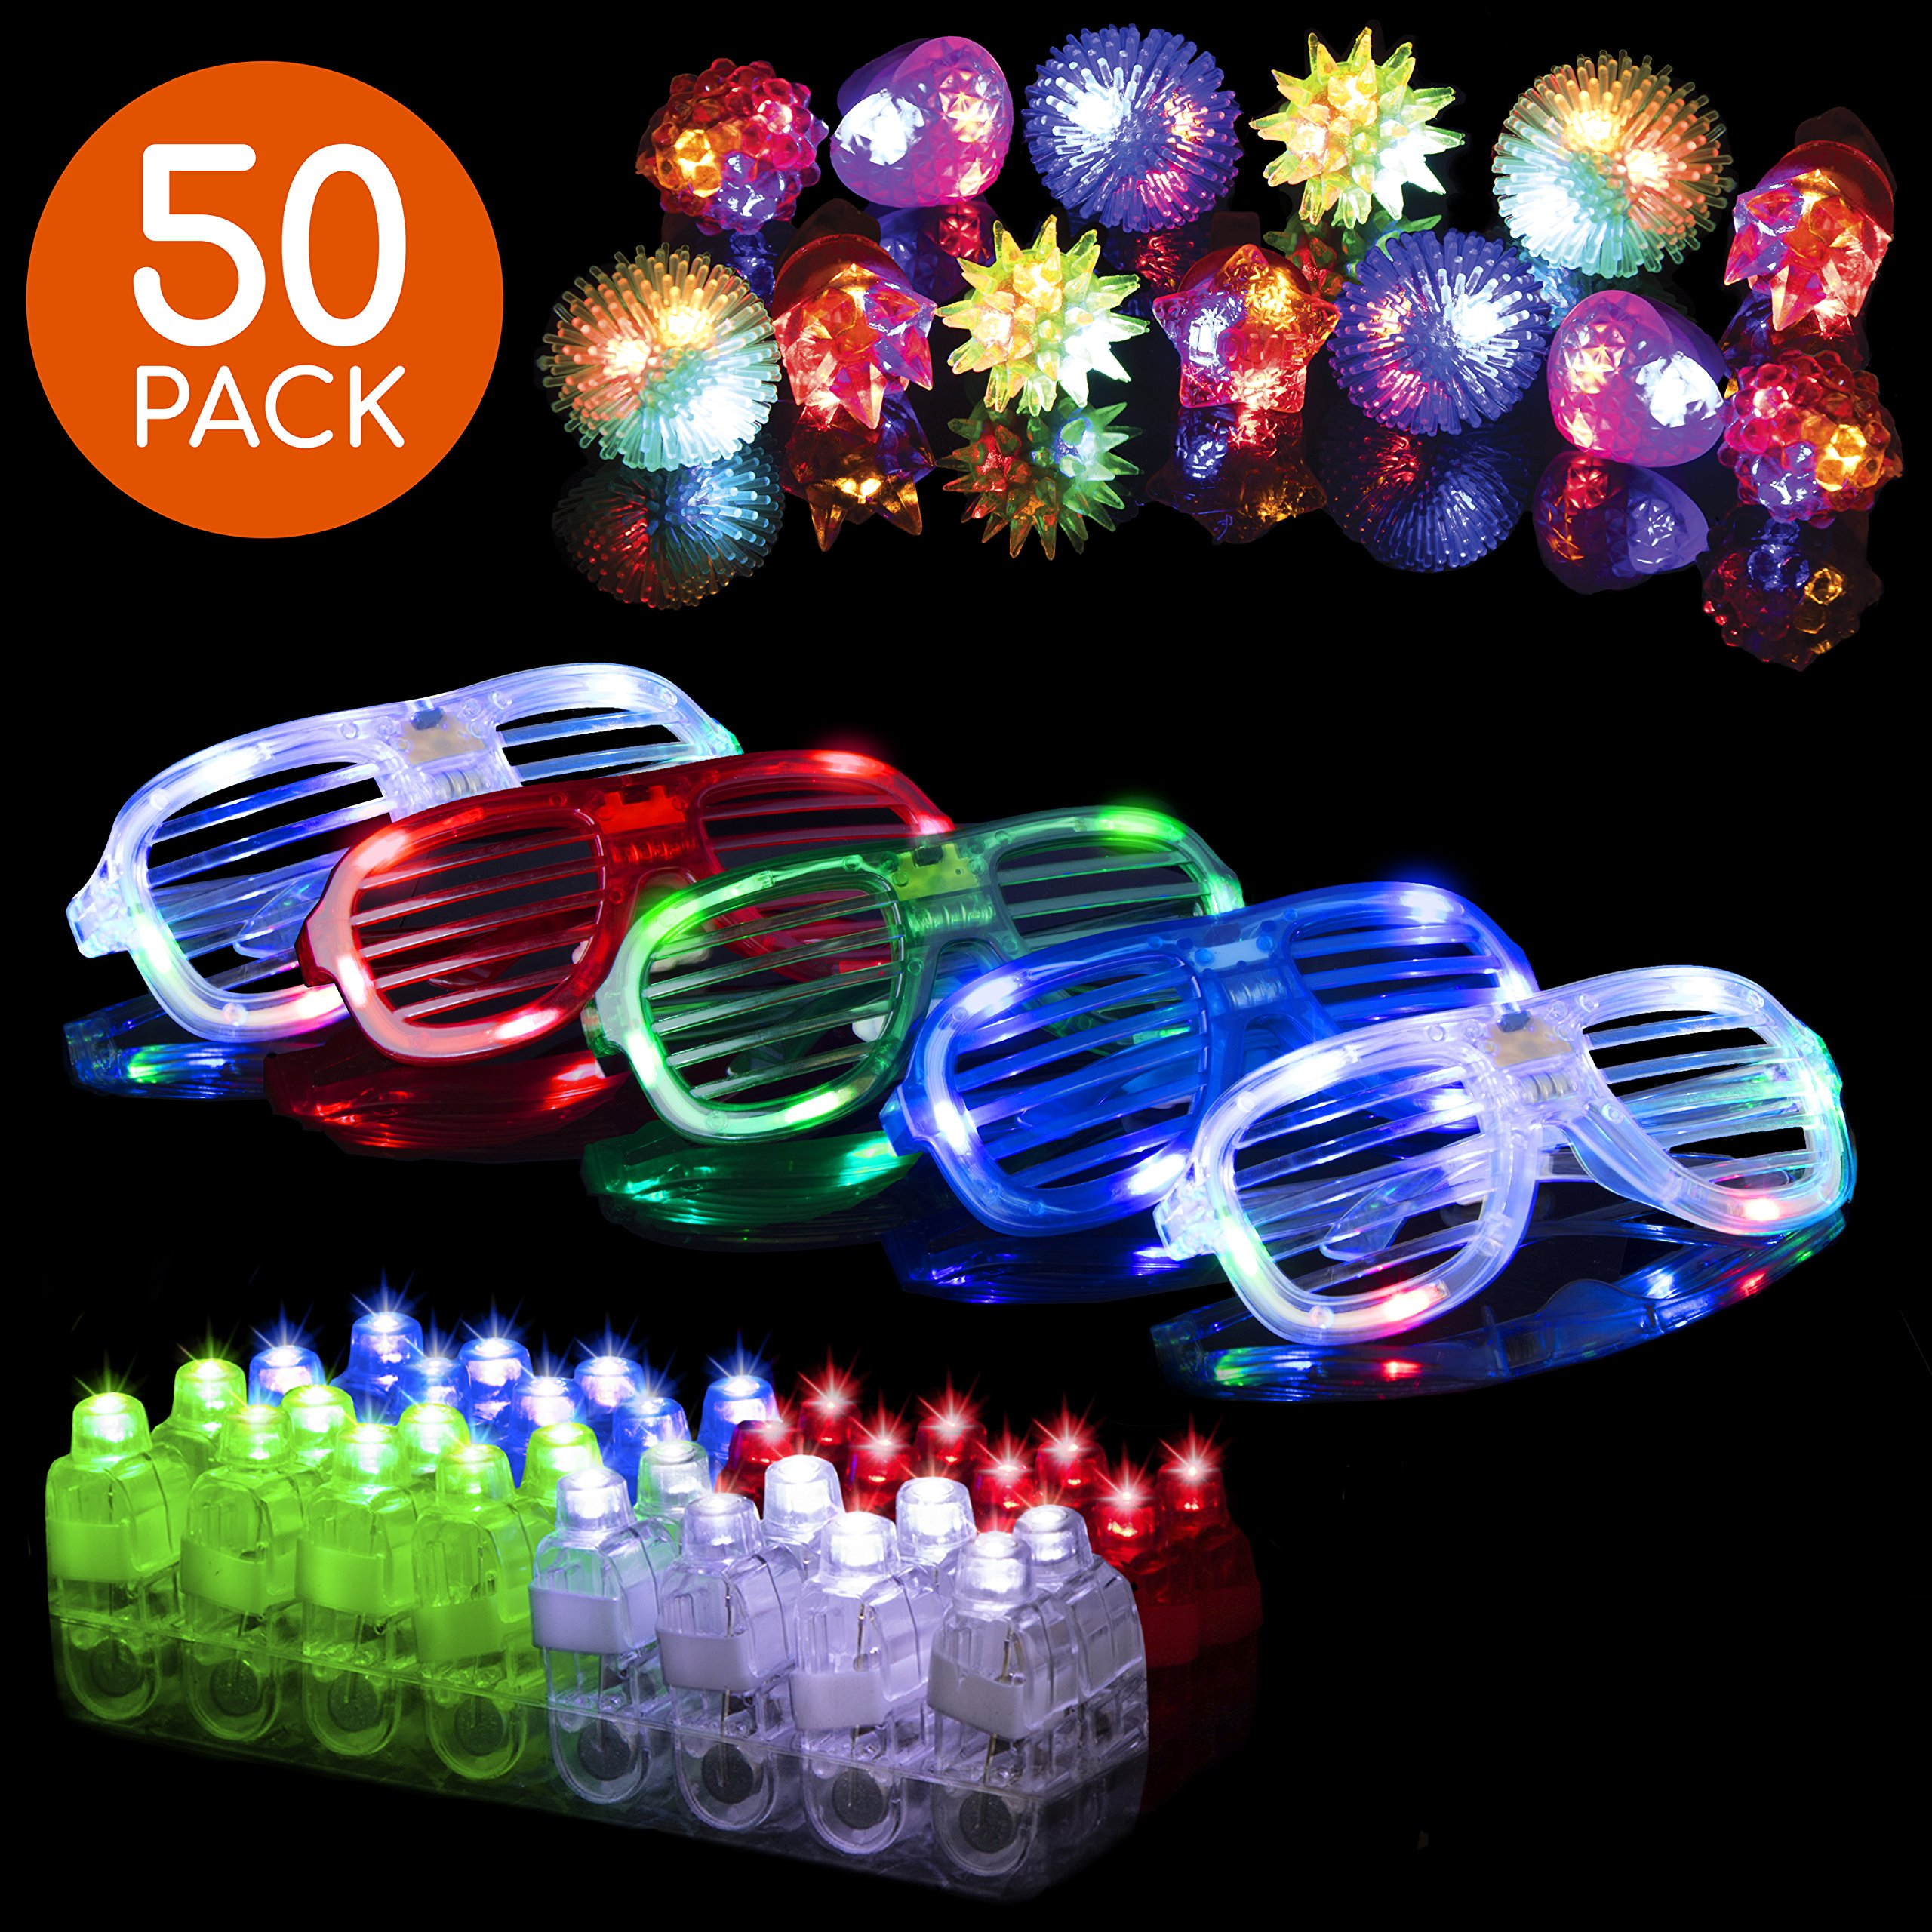 LED Glow Party Favors Party Supplies - 50 LED Glow Party Favor for Kids Glow in the Dark Party Supplies 32 Finger Light Up Toys + 13 Glow Rings + 5 Shades by PartySticks